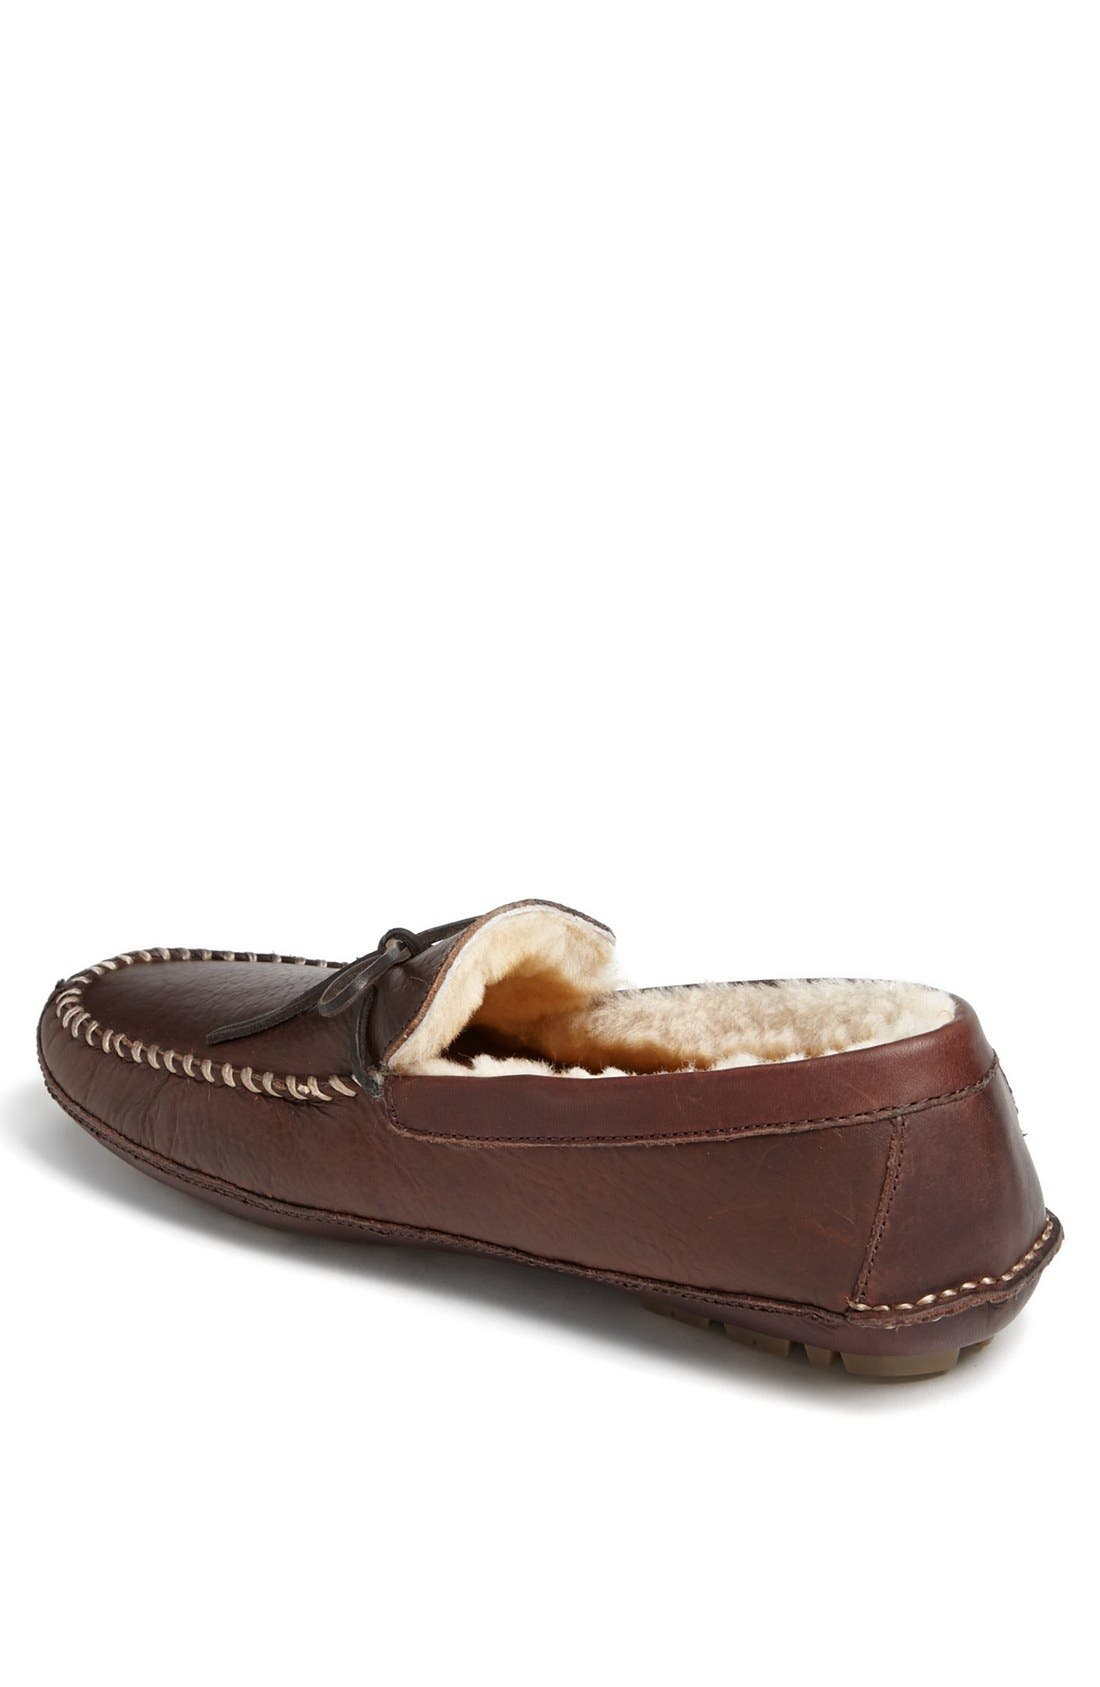 'Polson' Slipper,                             Alternate thumbnail 2, color,                             Bourbon Bison